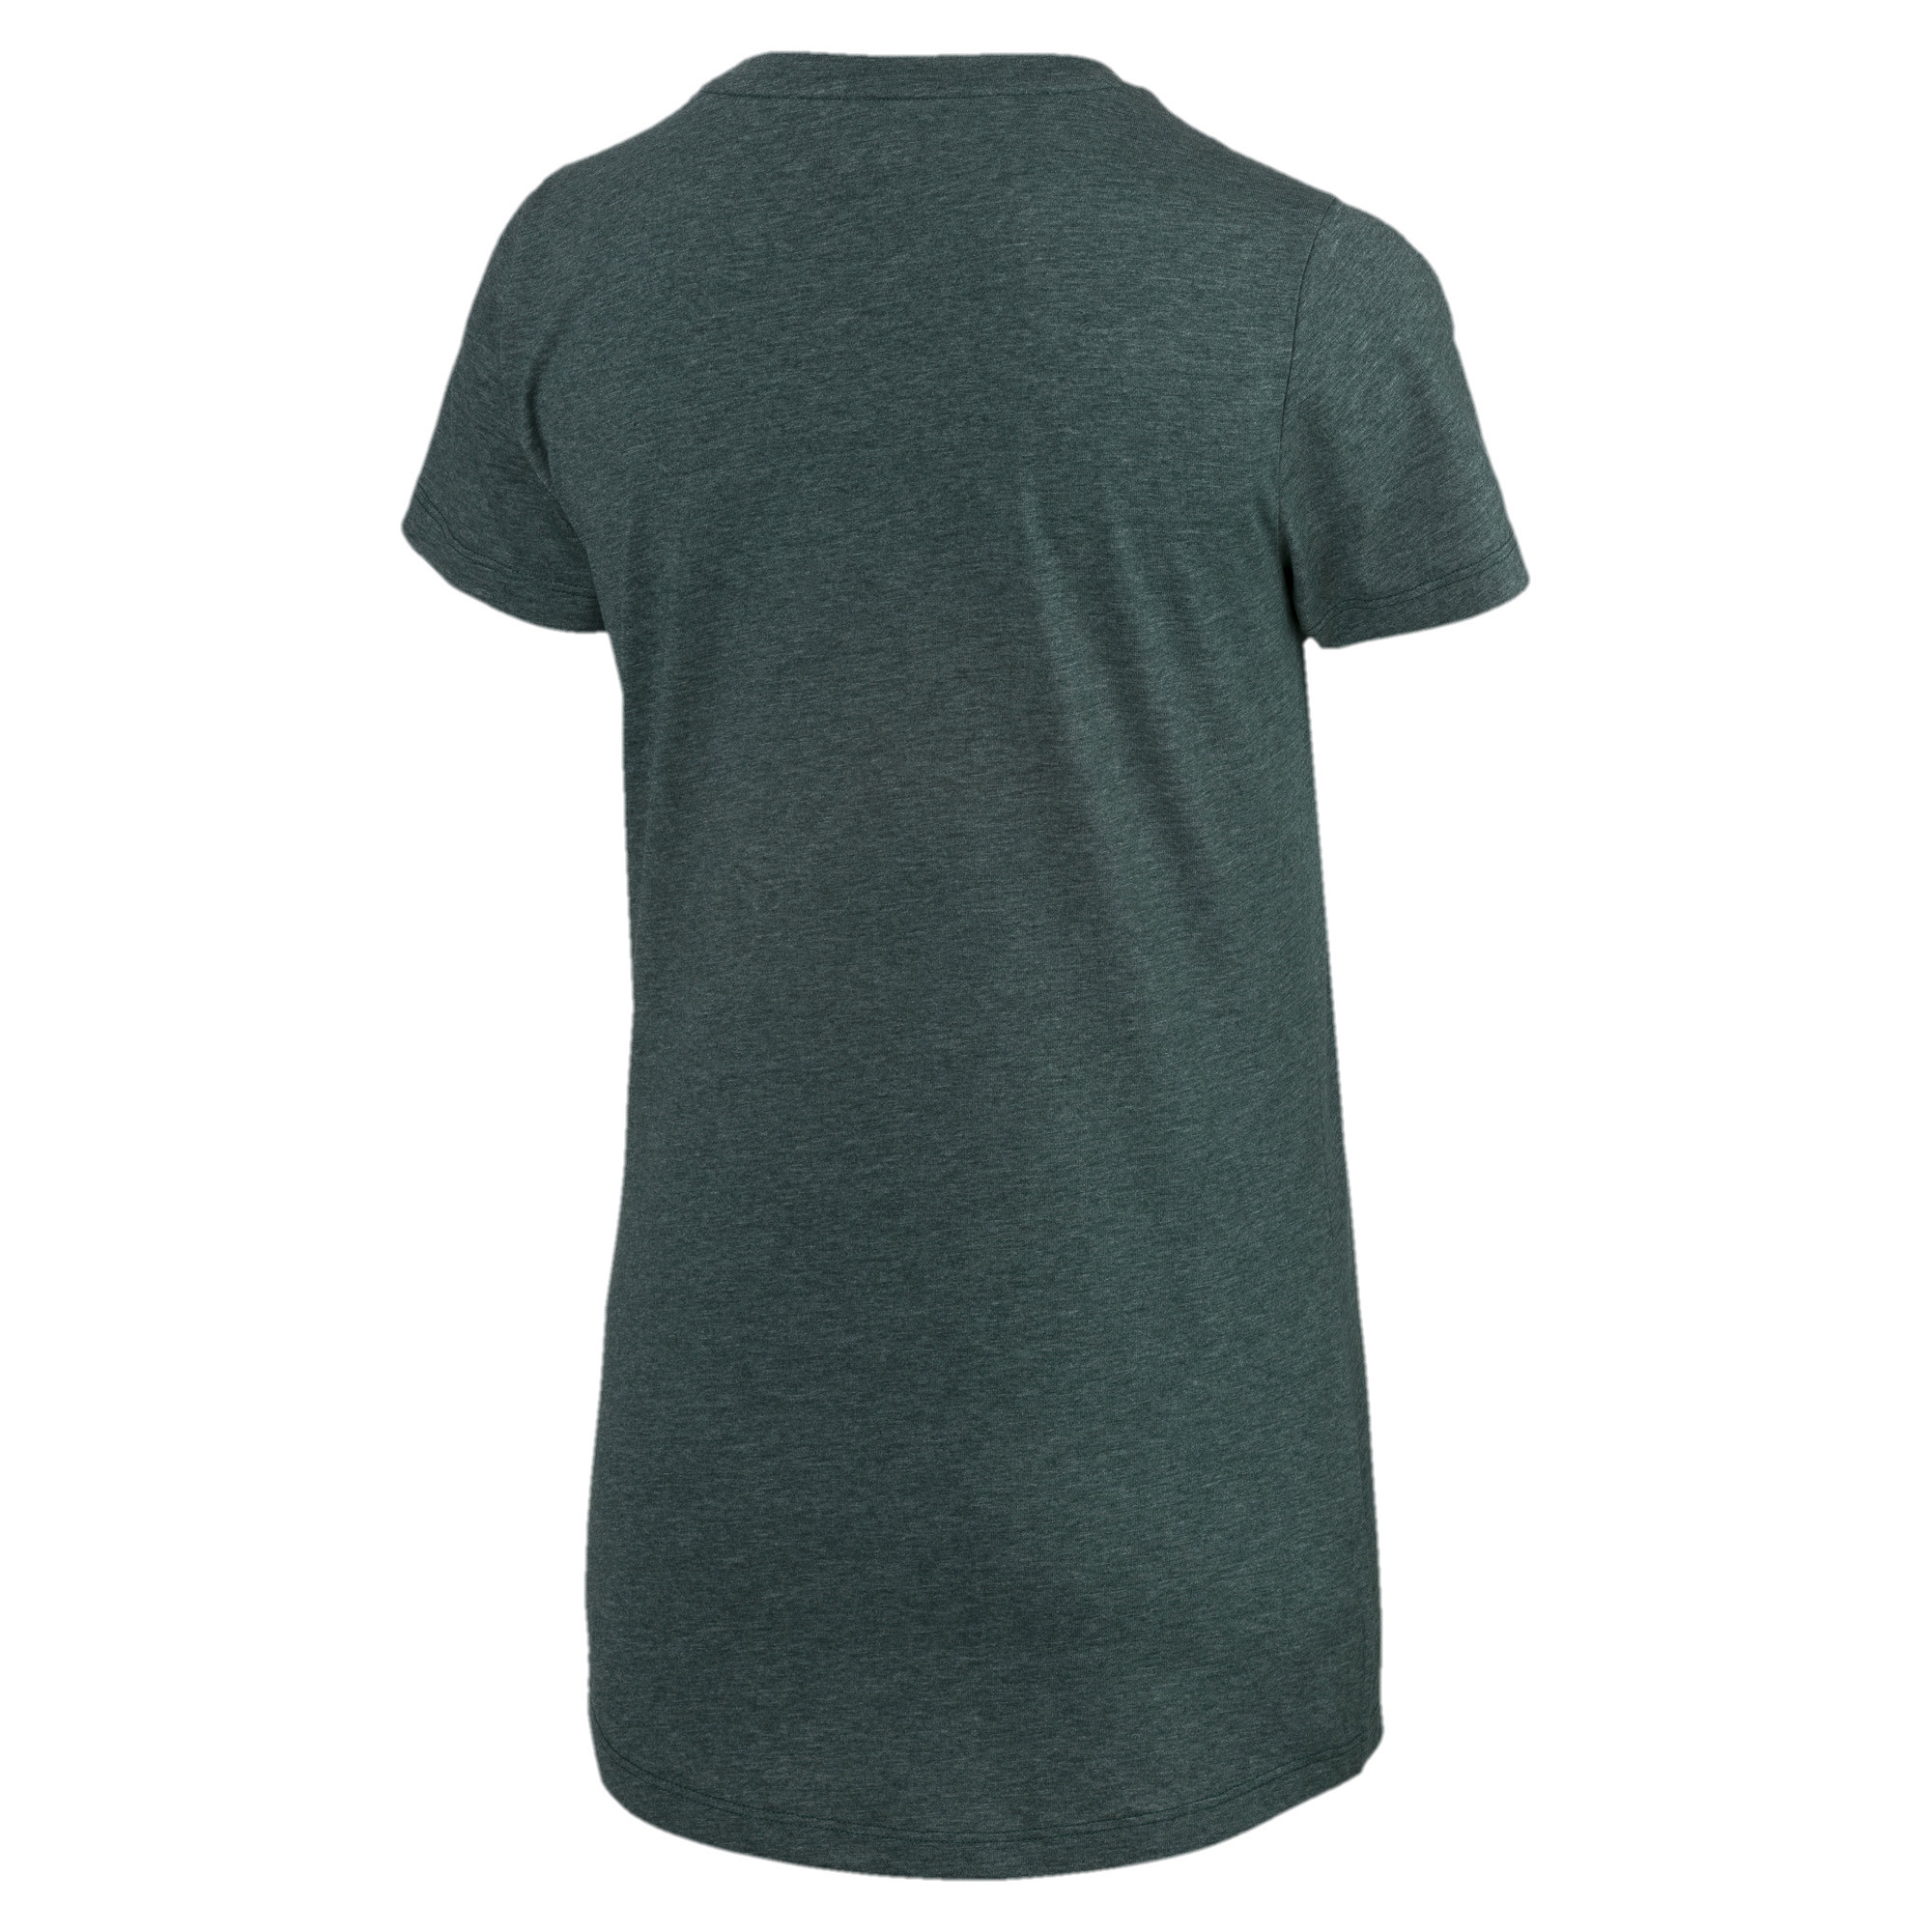 PUMA-Essentials-Women-039-s-Heather-Tee-Women-Tee-Basics thumbnail 11